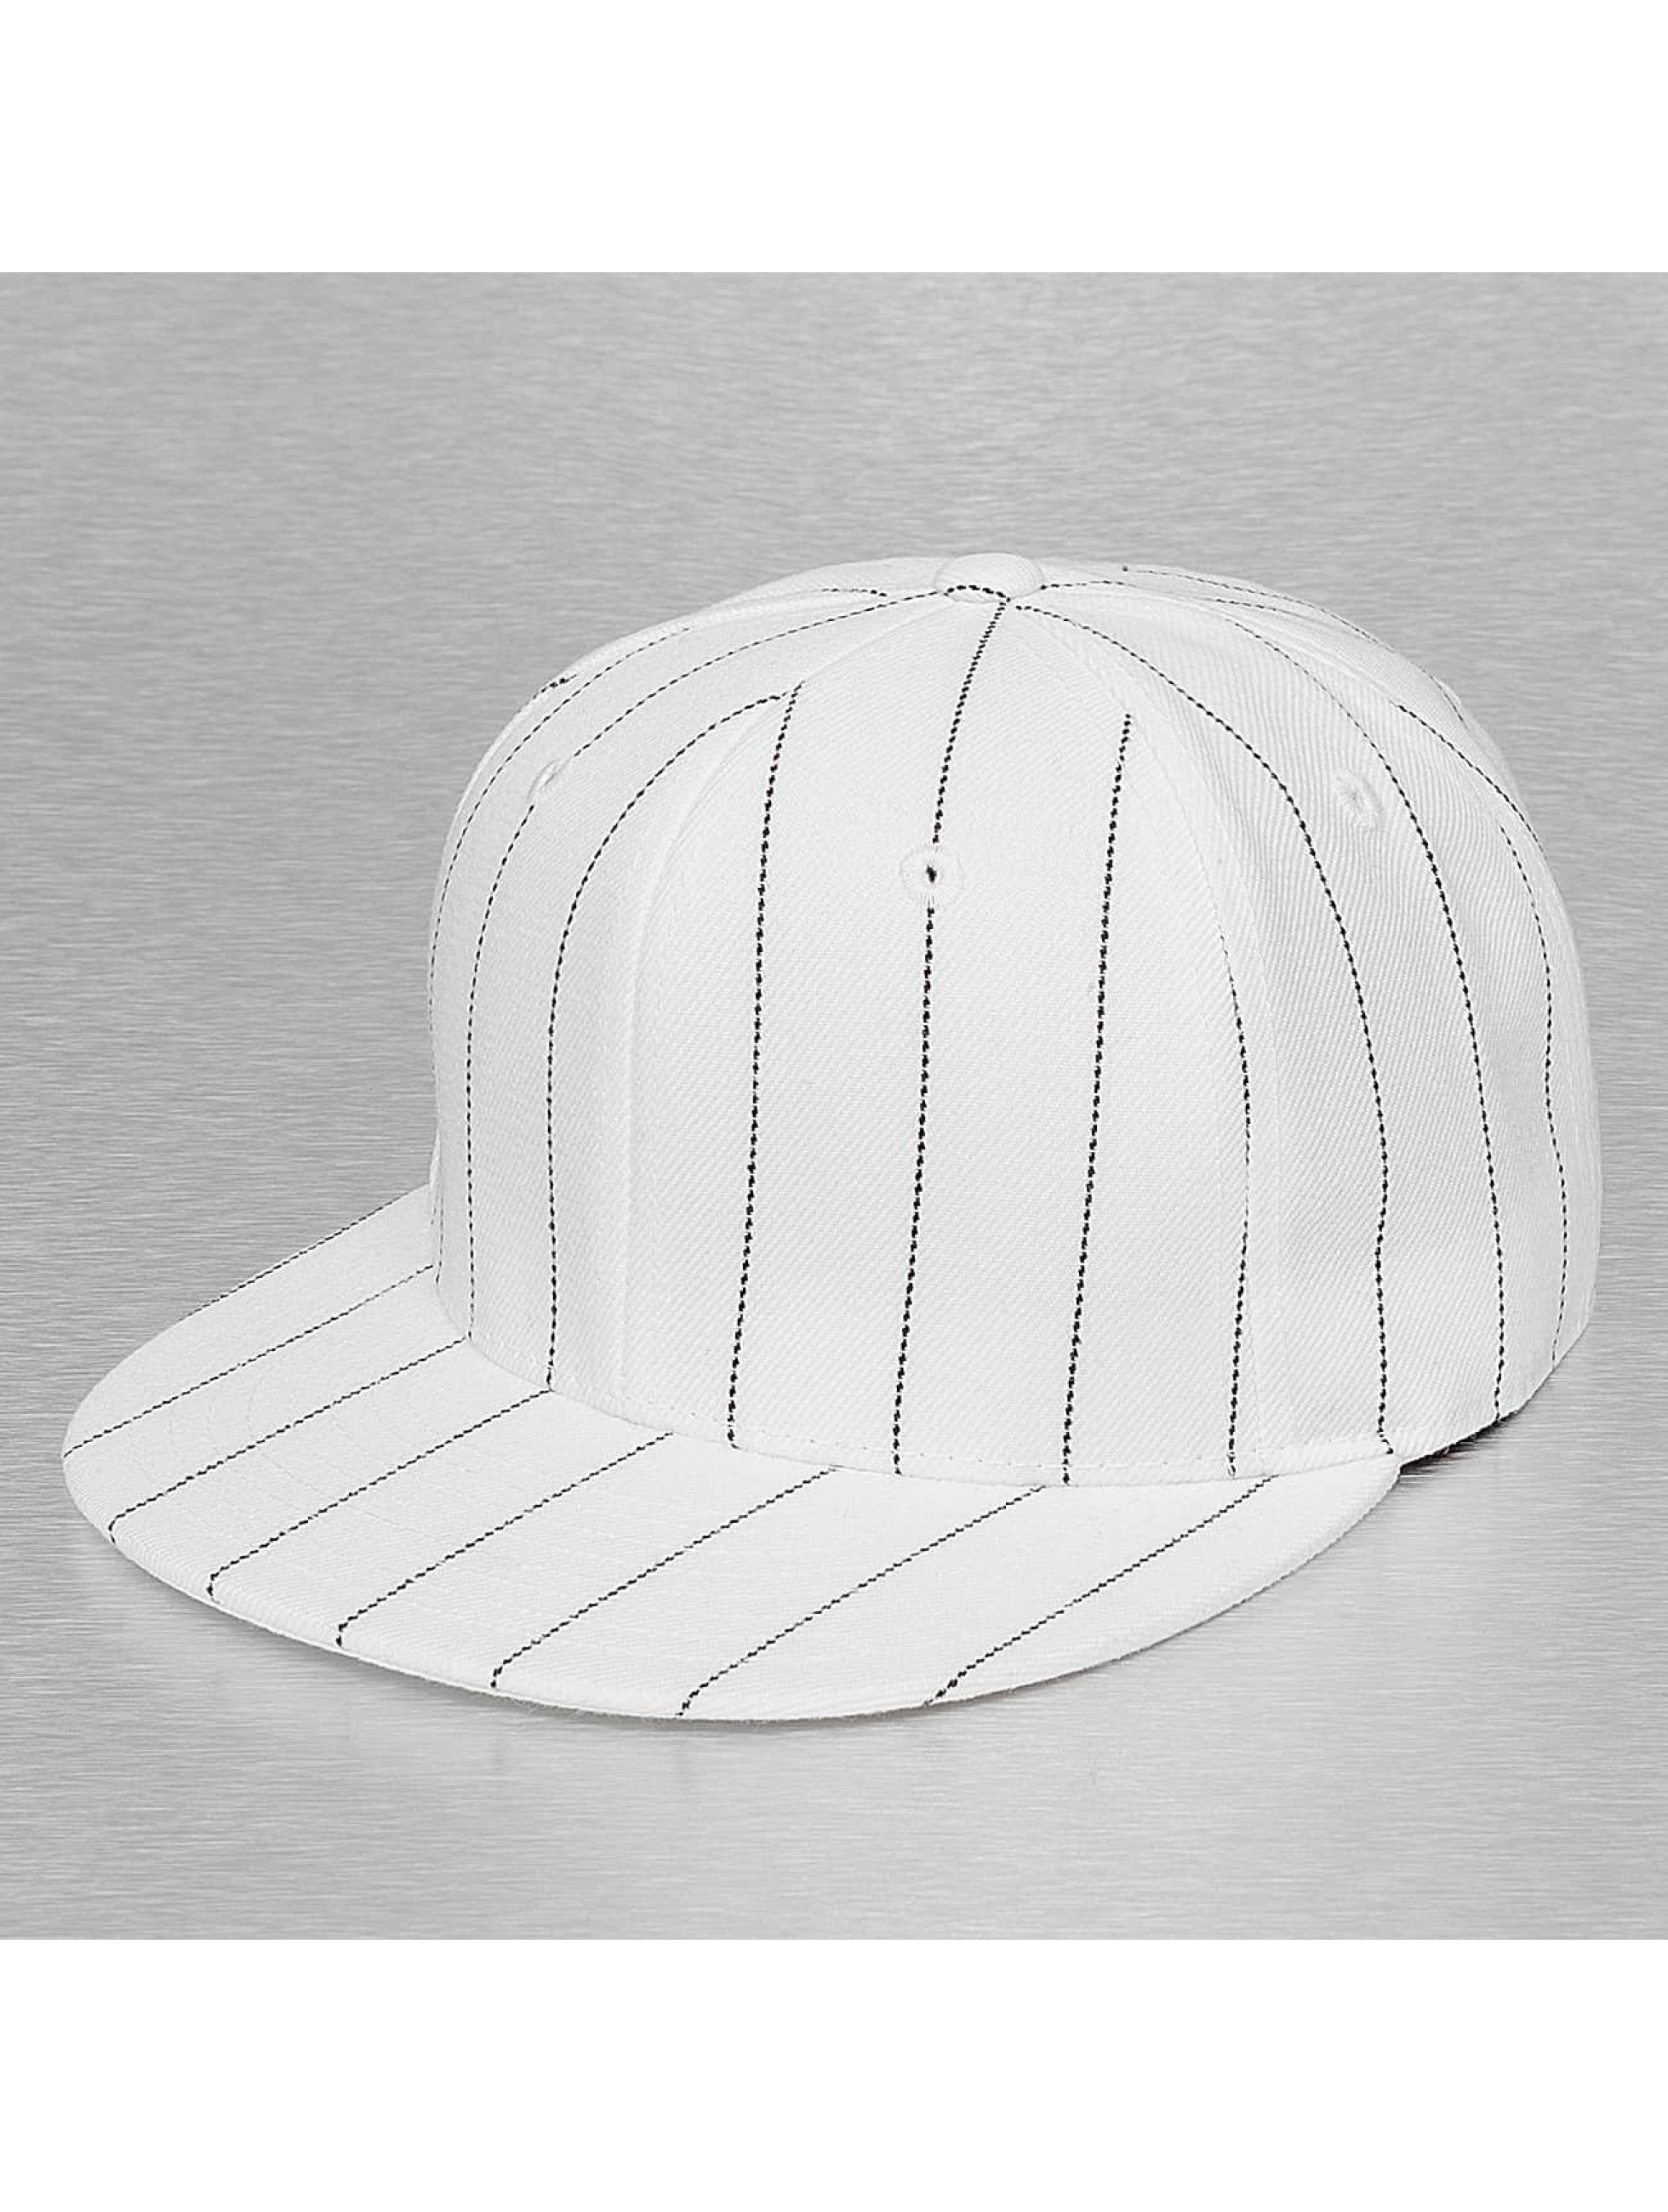 Cap Crony Männer,Frauen Fitted Cap Pin Striped in weiß